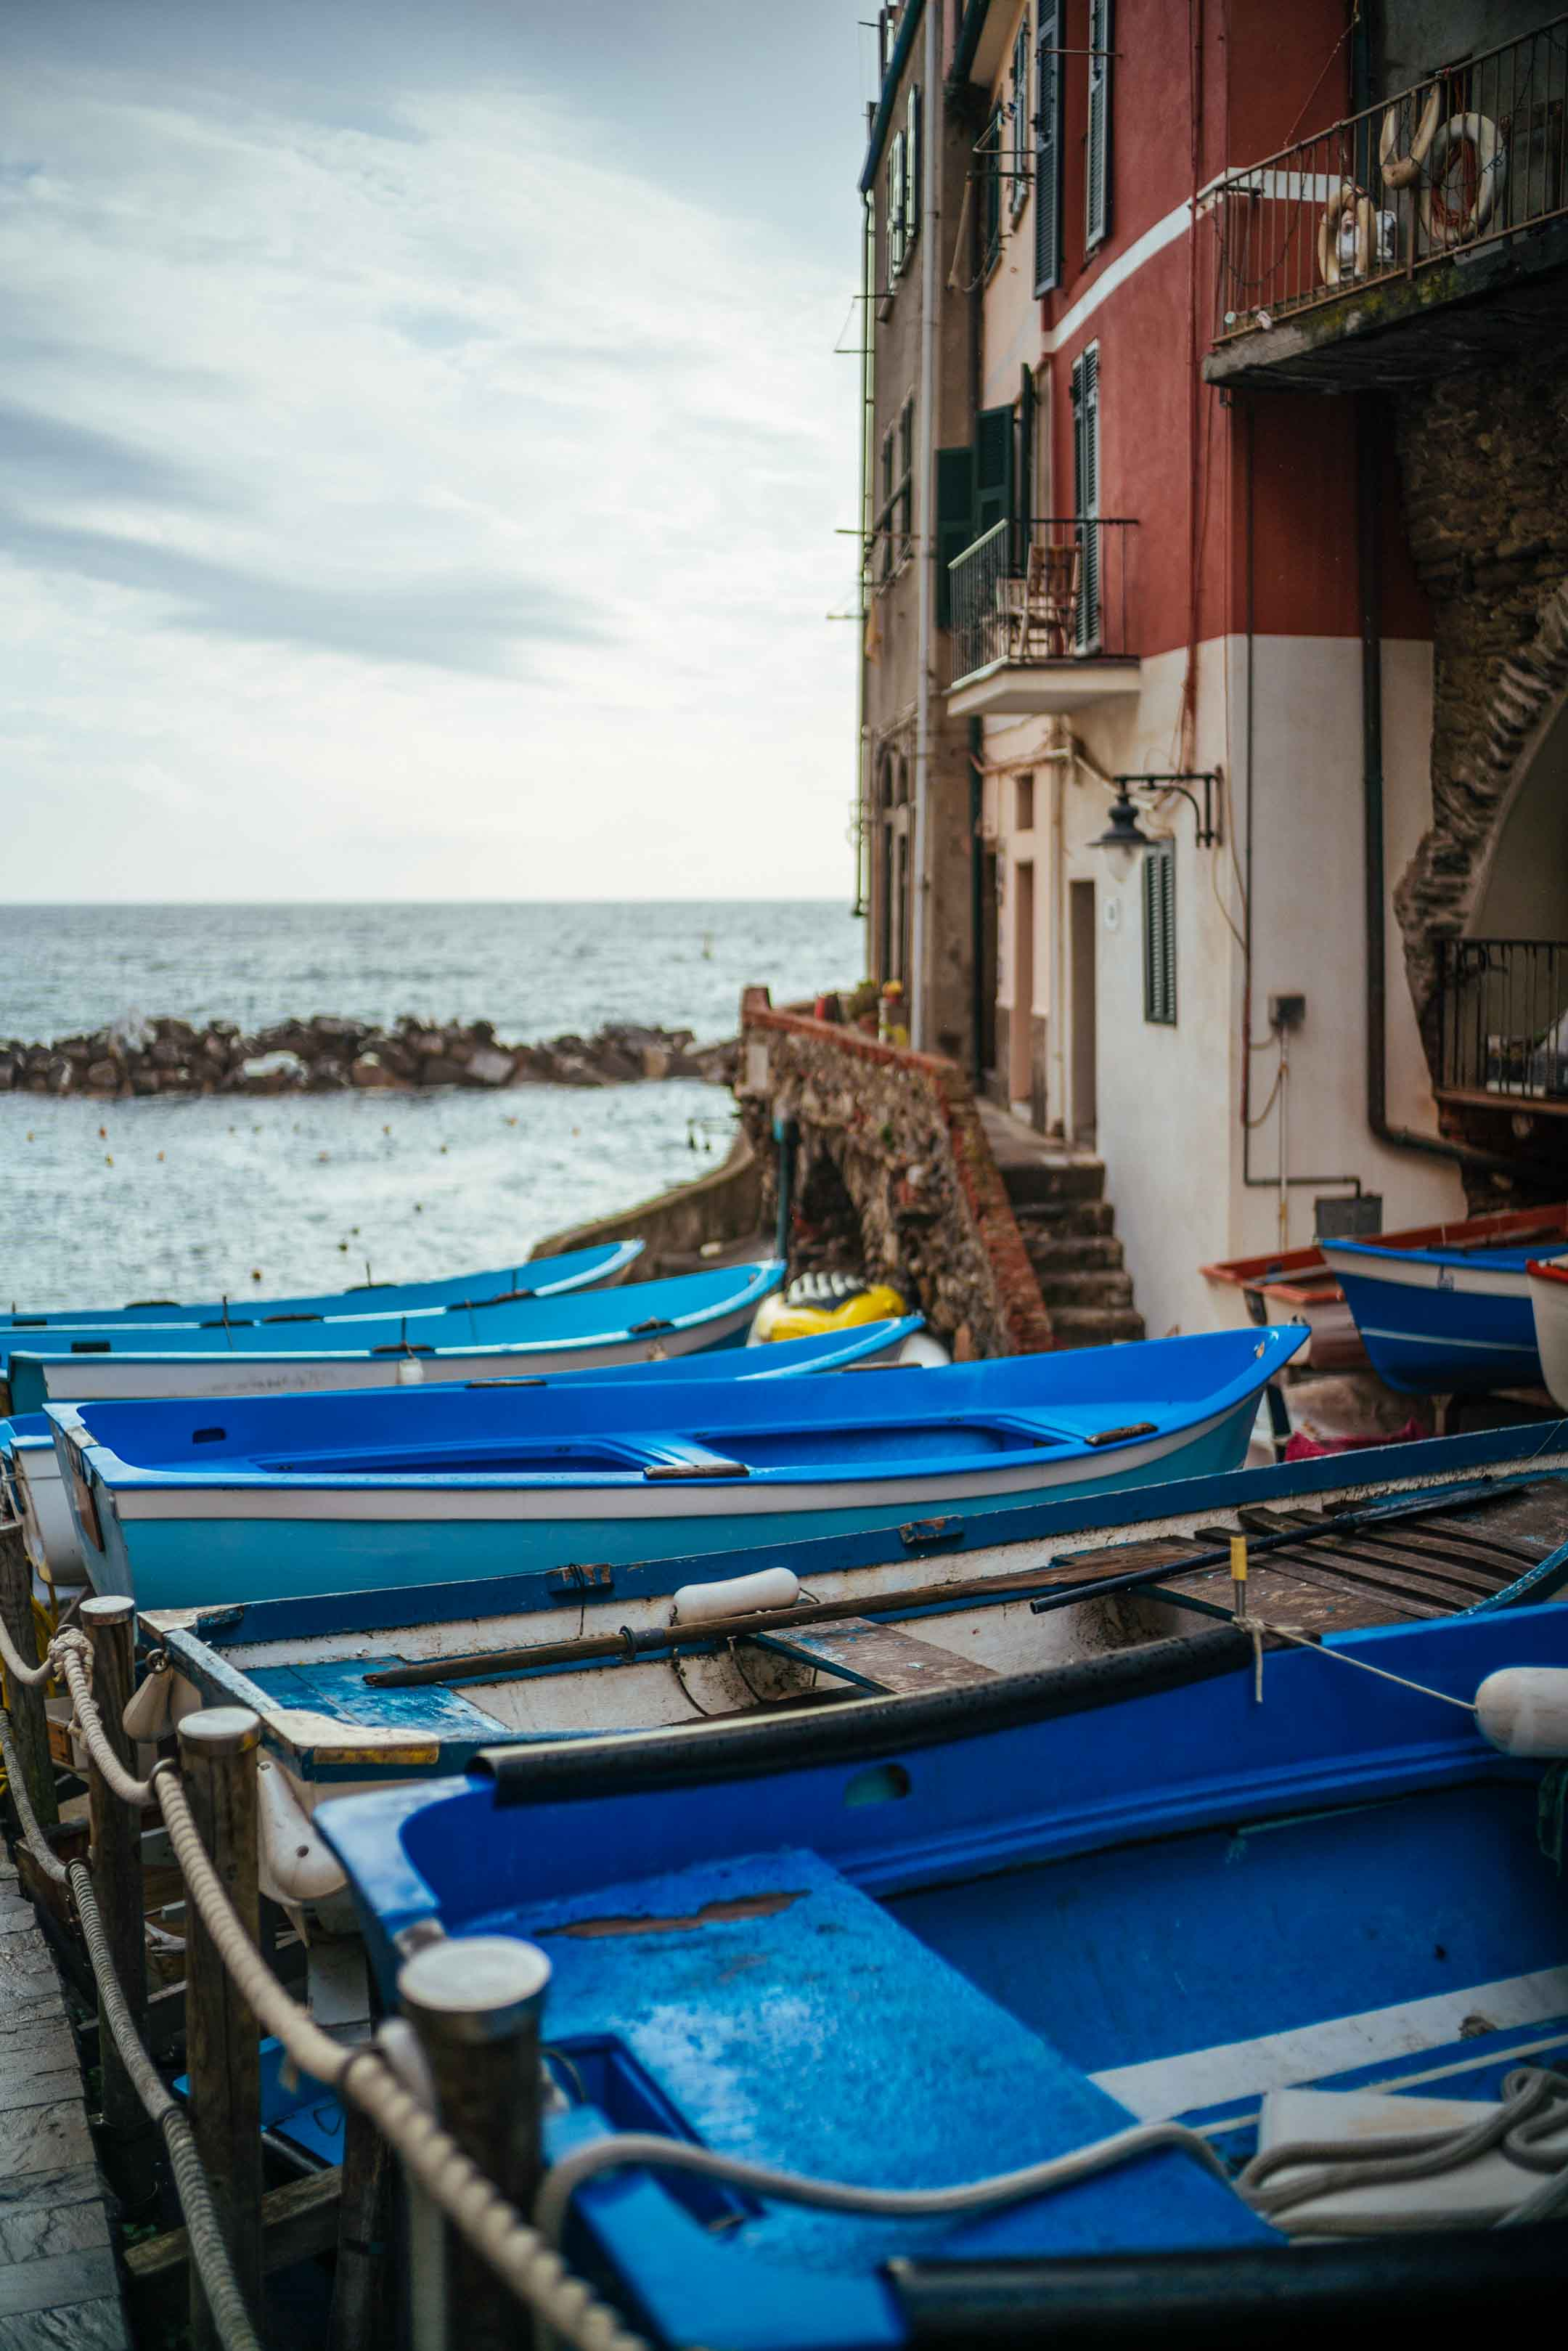 Boats along the shore at Ramagore in Cinque Terre, one of the most popular vacation destinations in Italy. Rent a boat to ride along the coast and see the town. Take a boat tour of Cinque Terre.